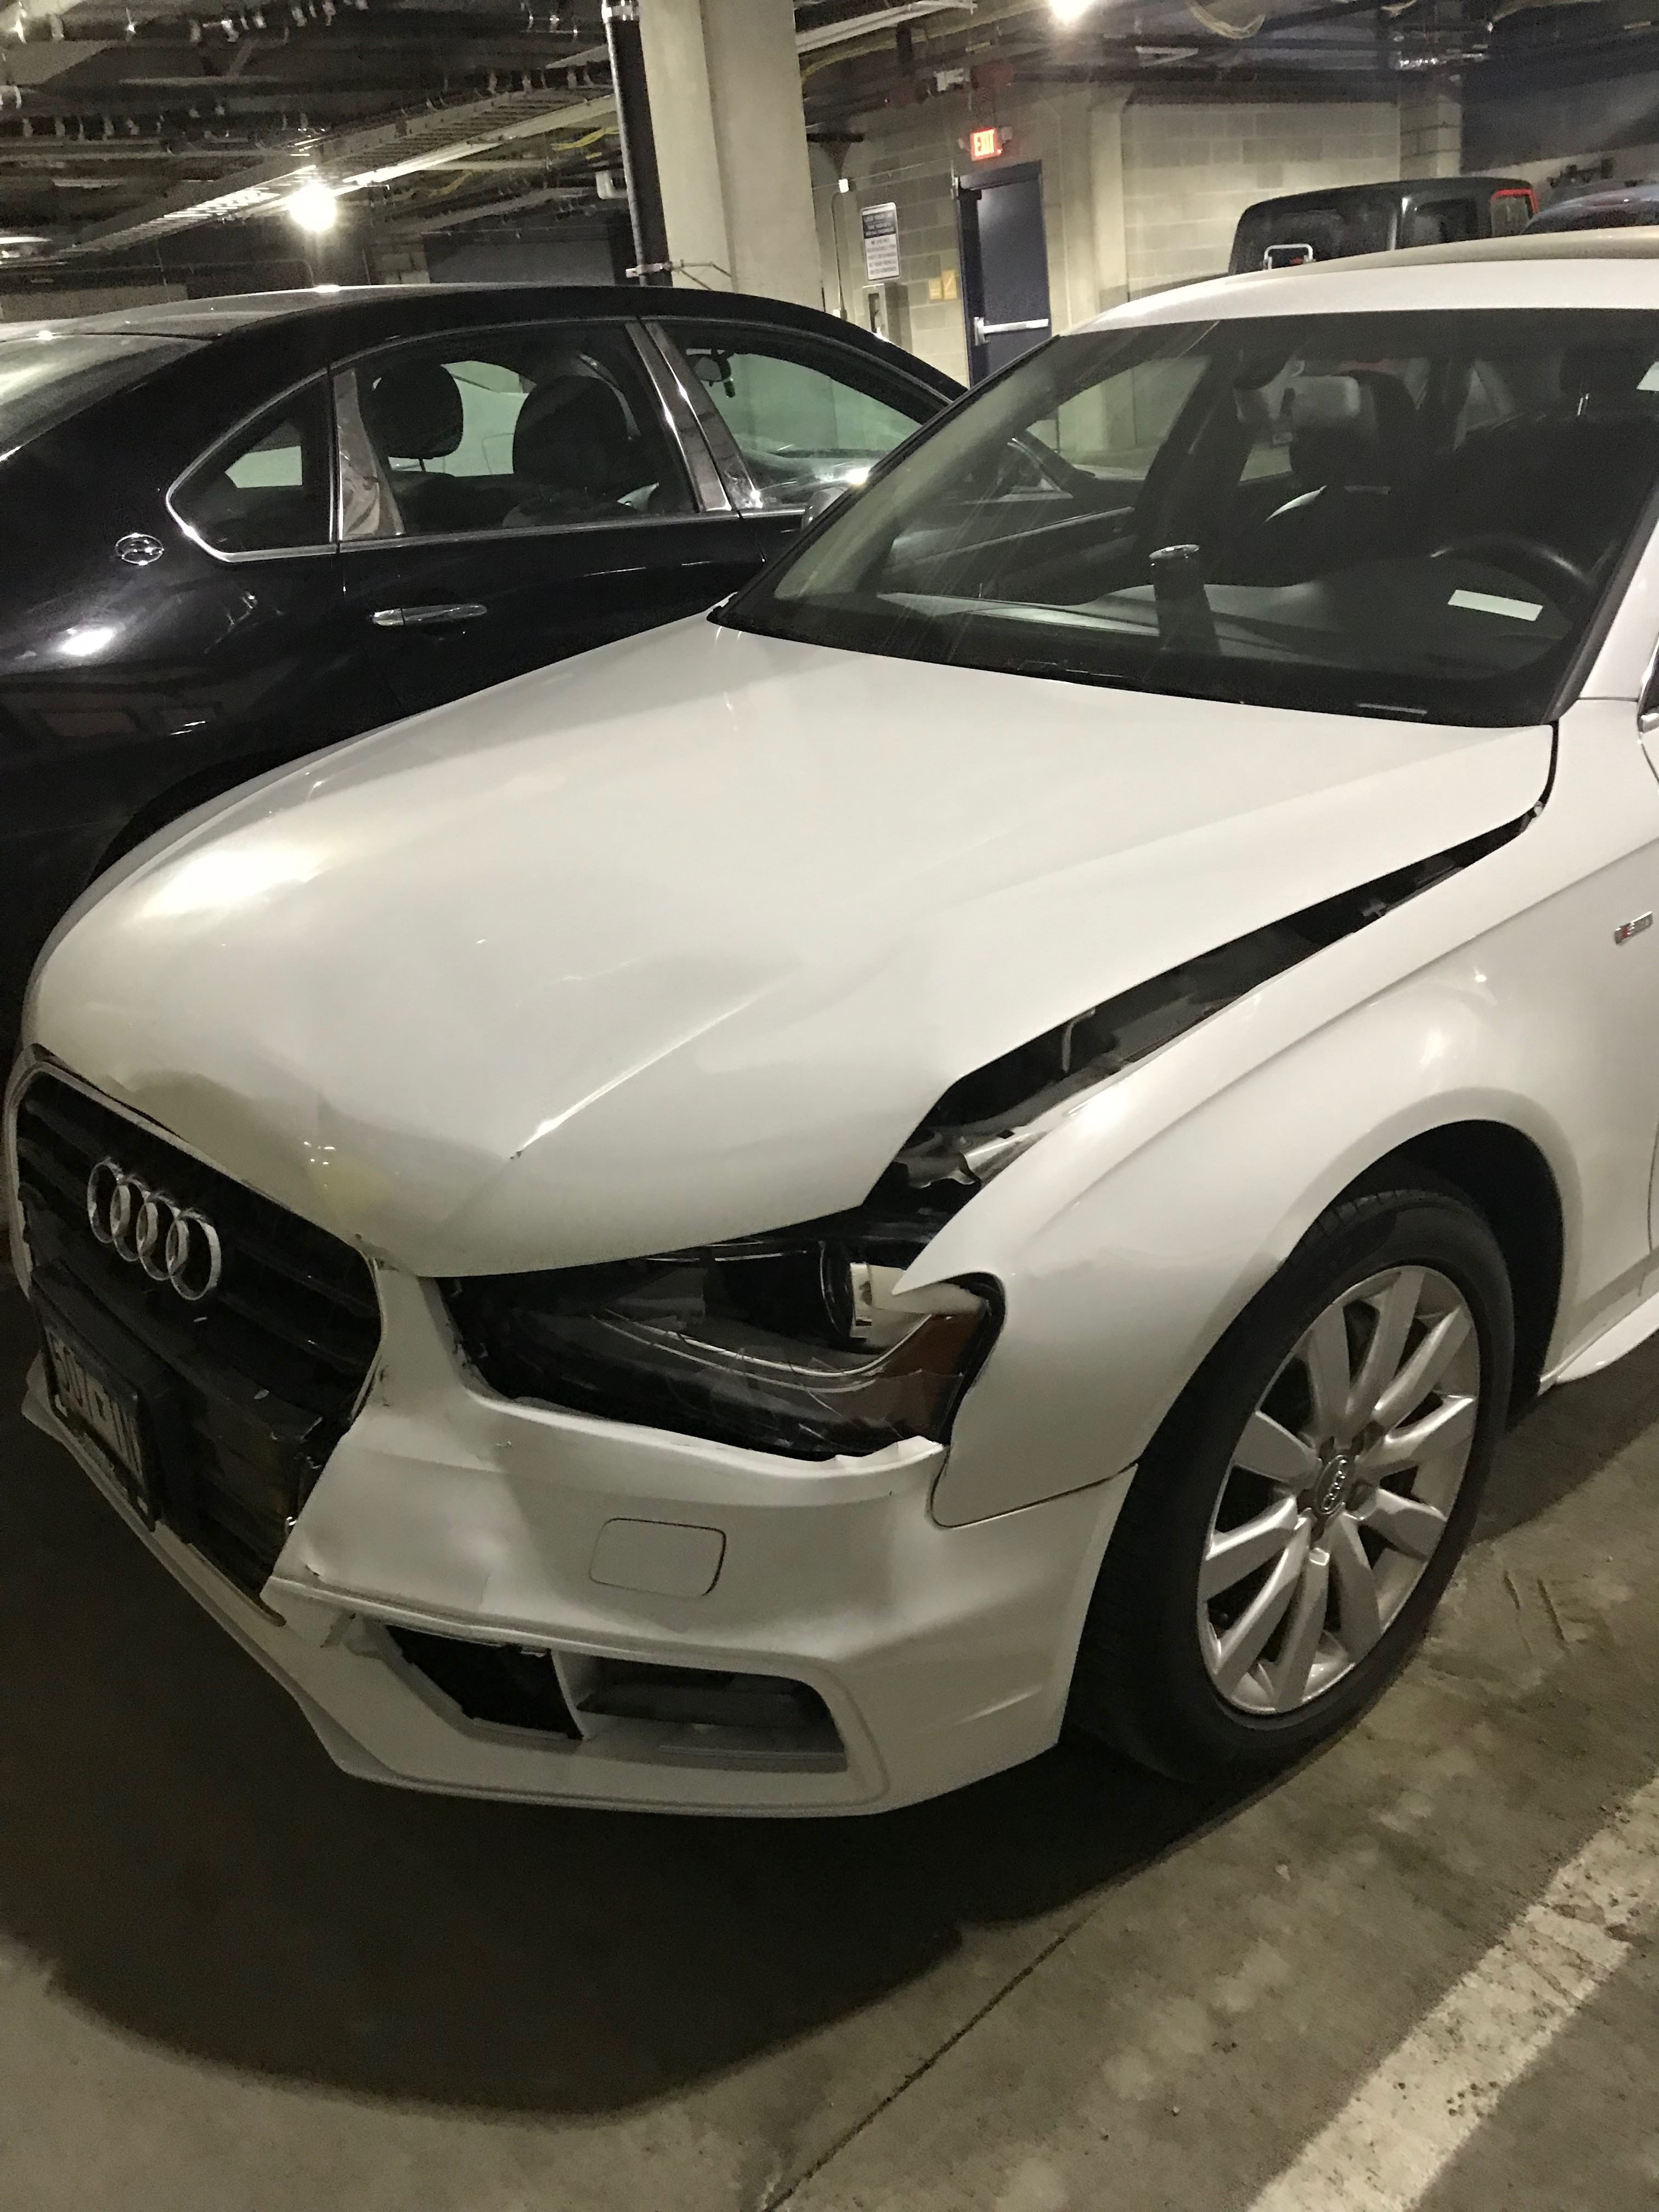 Get Cash For A Junk Or Damaged Audi | Junk my Car